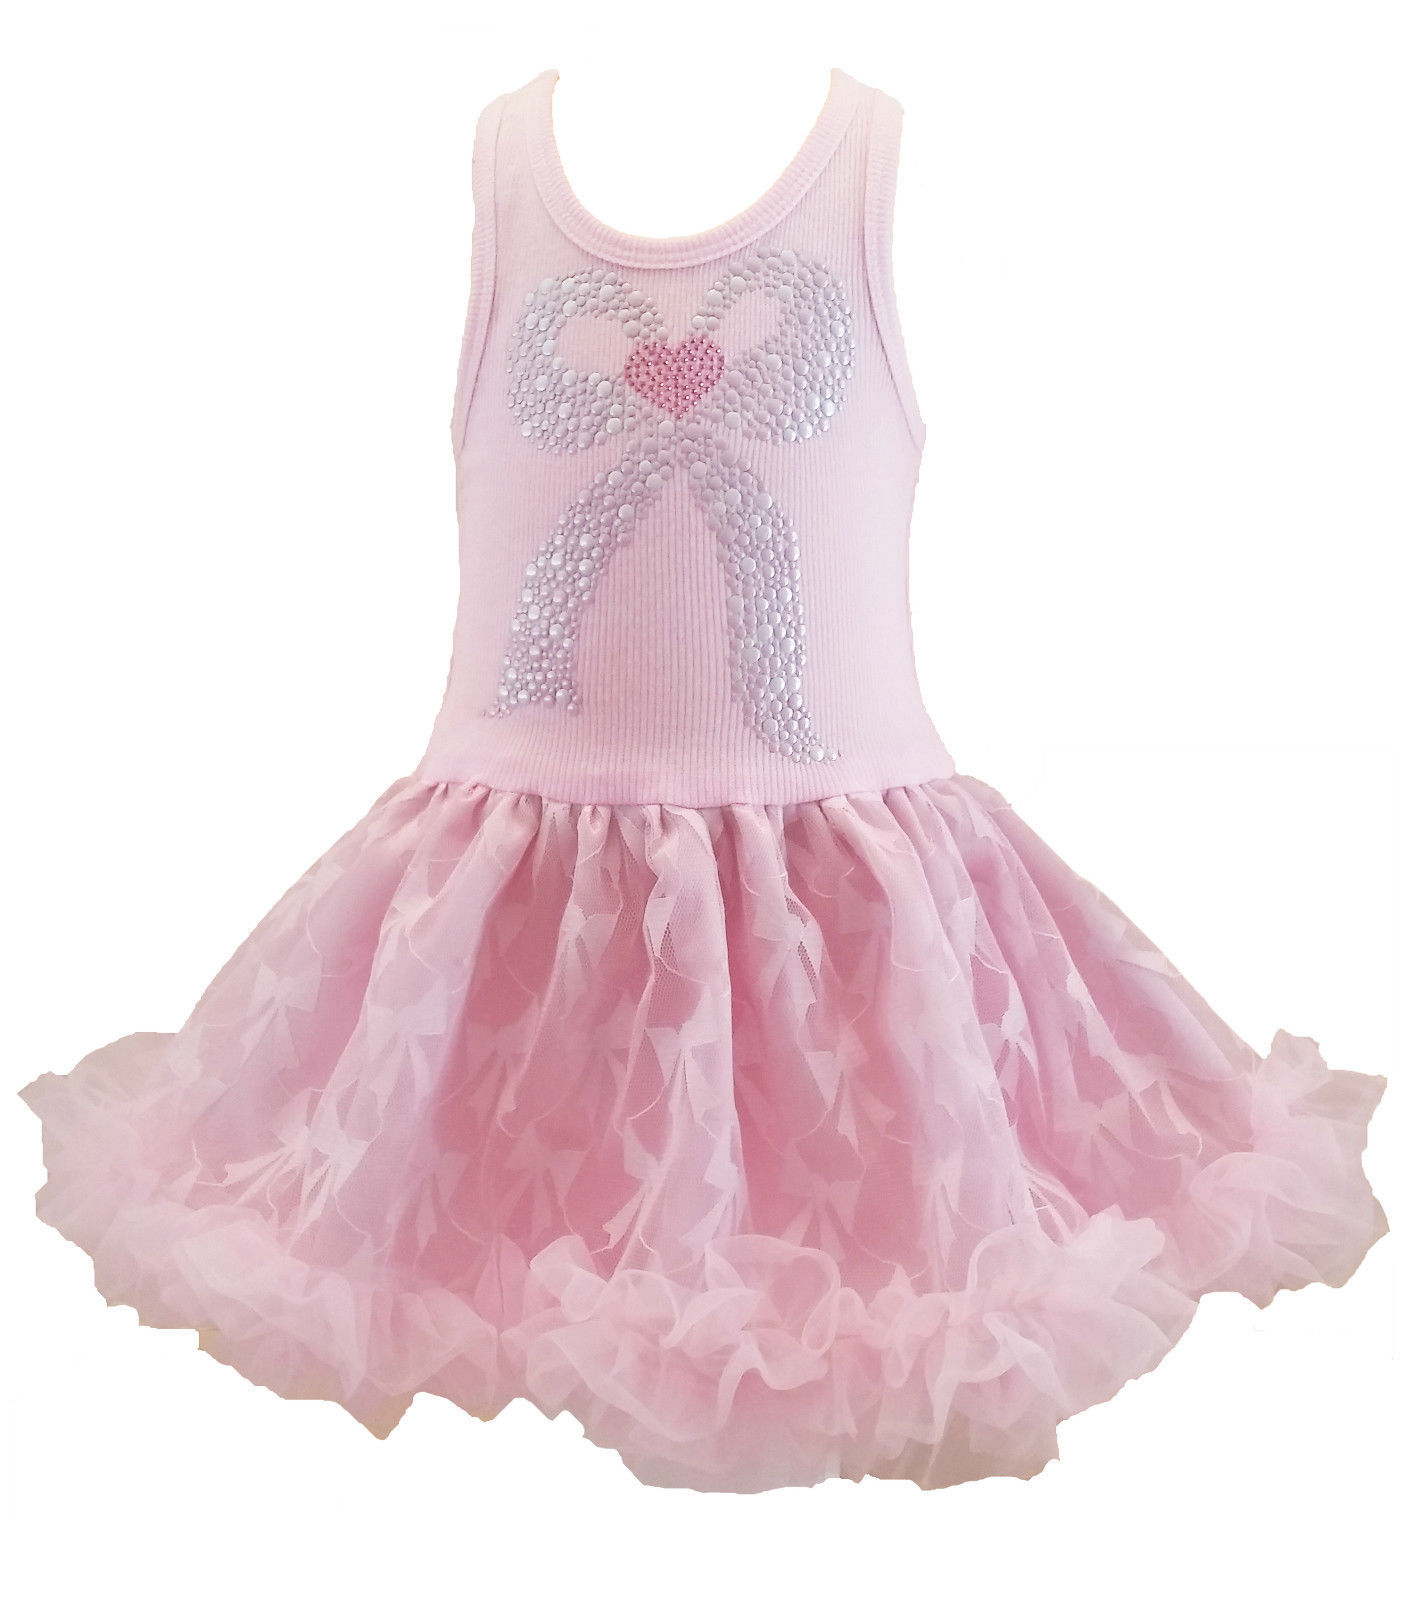 Sweet Pink Misty Bow Chiffon Sleeveless Tutu Dress, 3-6x USA, Cupcakes & Kisses